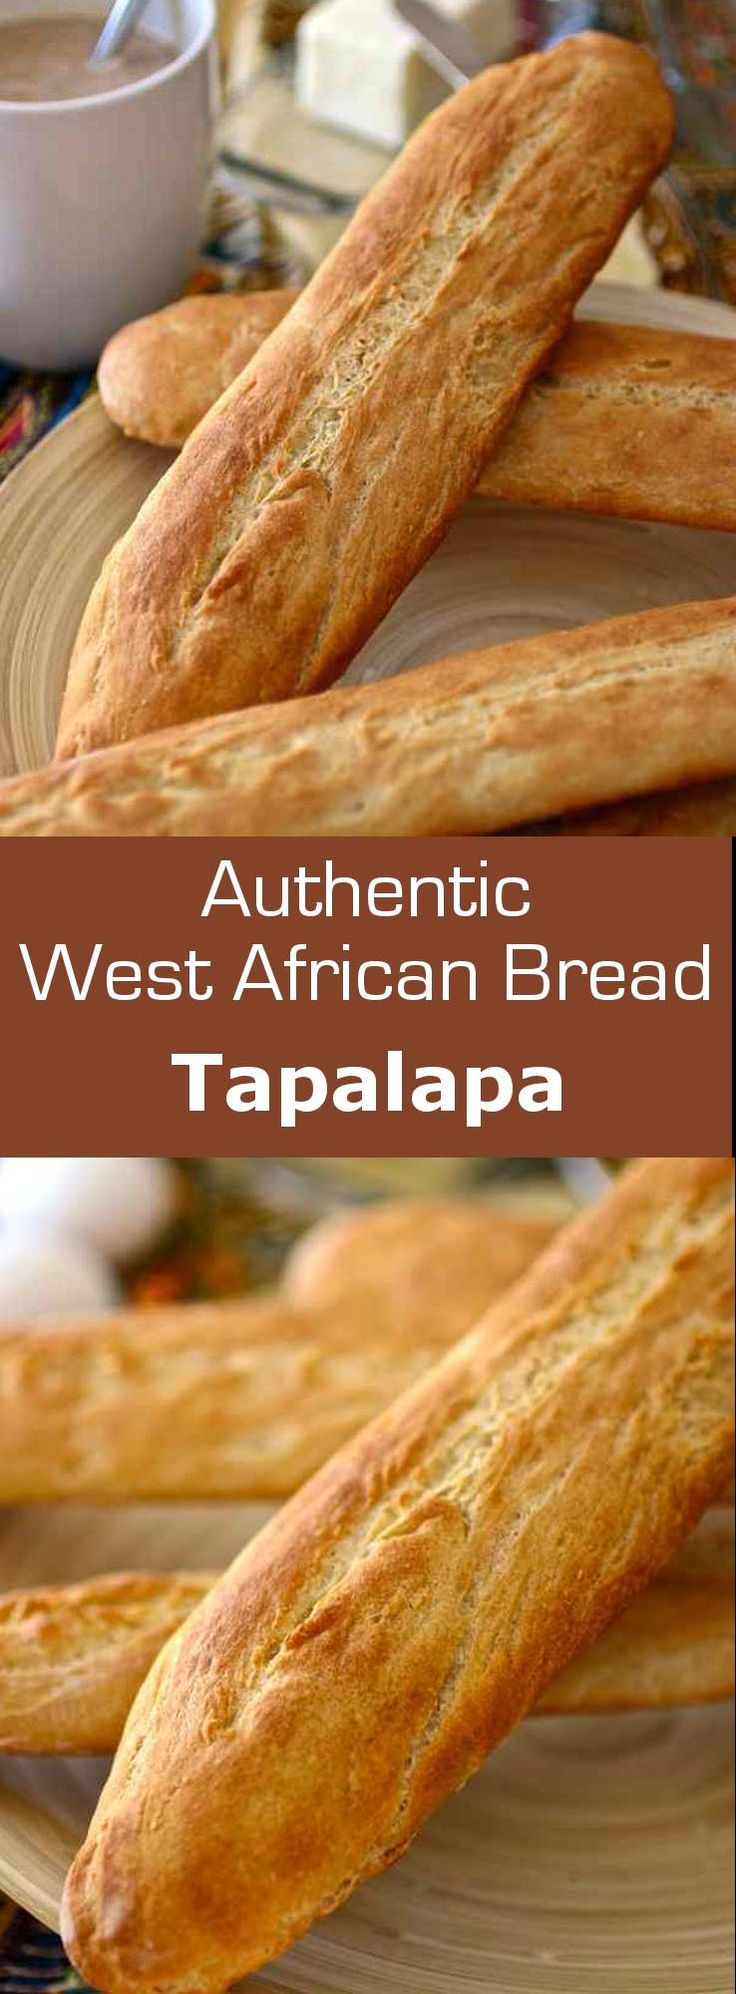 Tapalapa is a popular West African bread, similar to baguette, prepared with a…